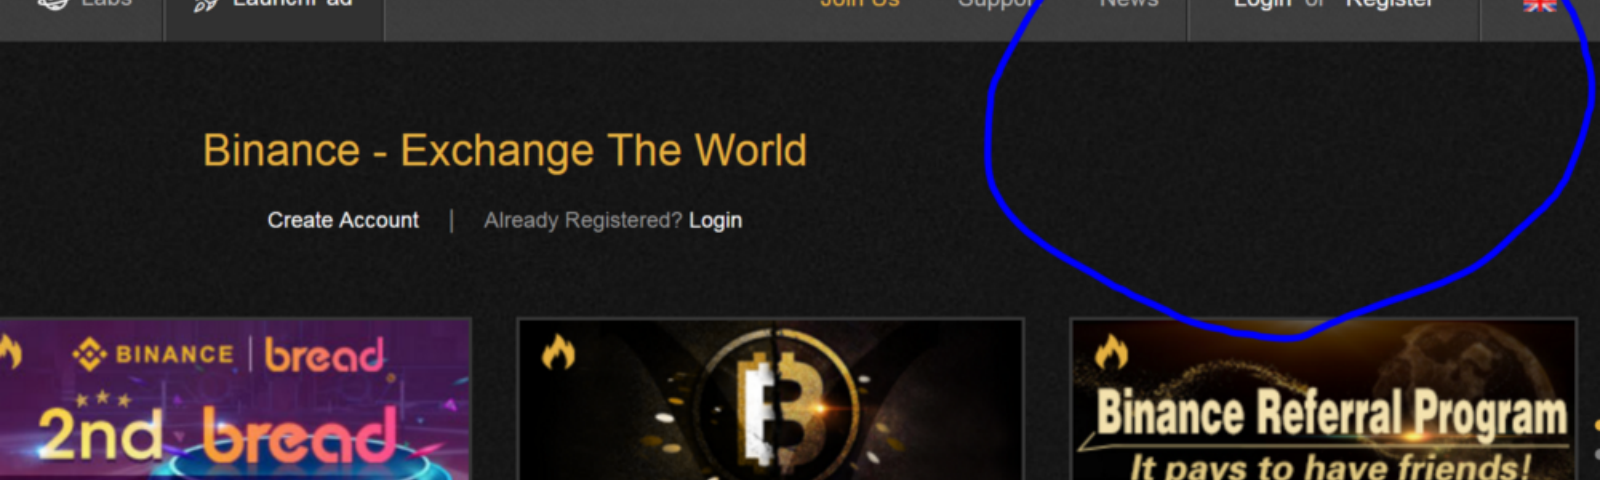 how to deposit bitcoin on ignition